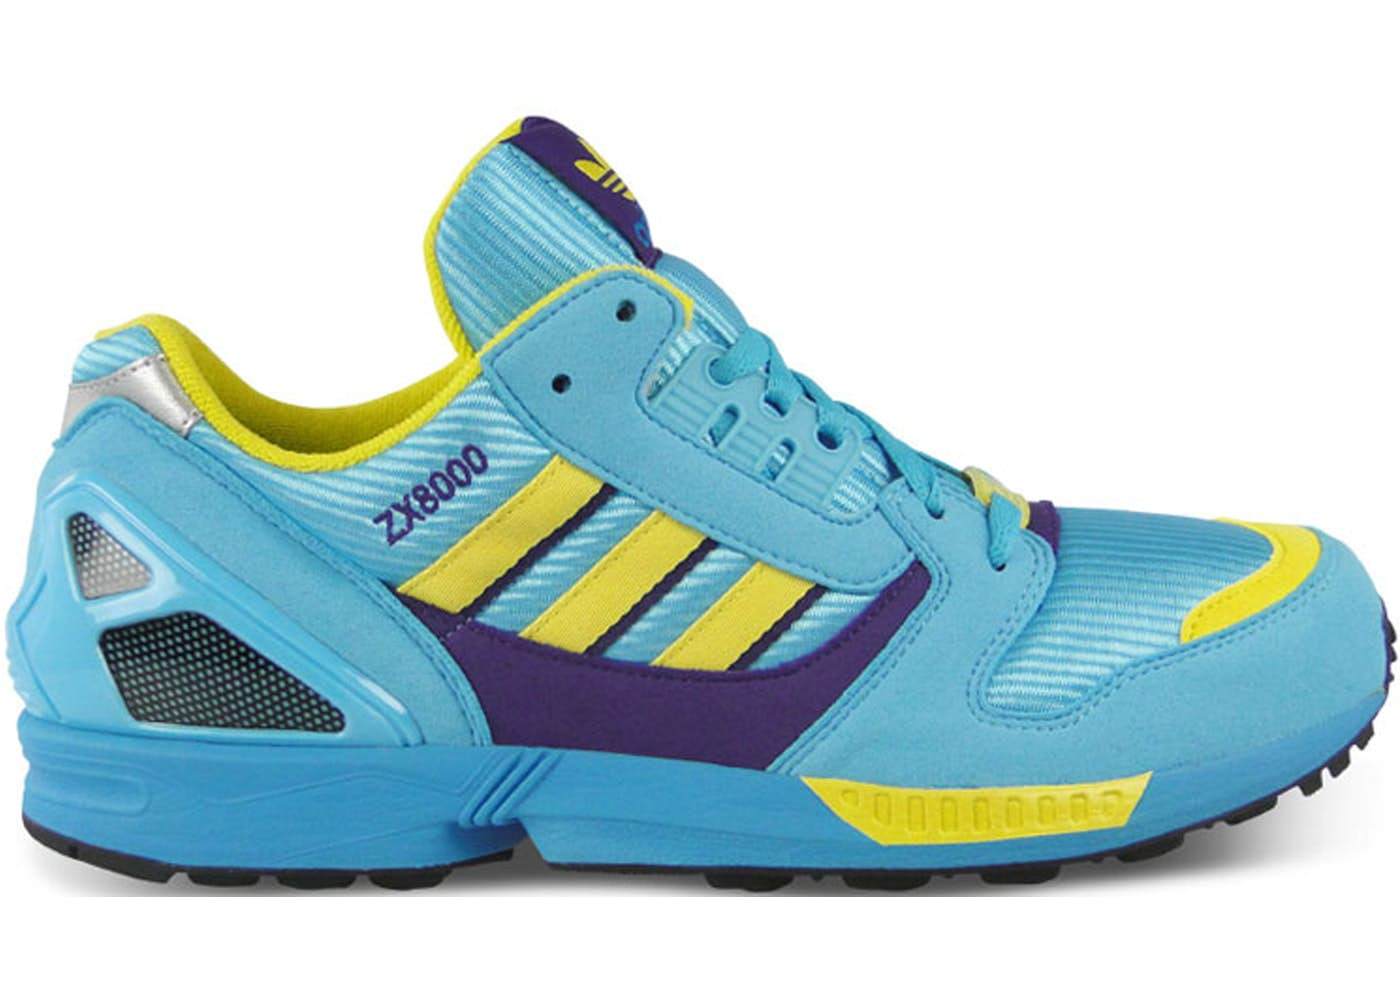 adidas zx 8000 og aqua. Black Bedroom Furniture Sets. Home Design Ideas